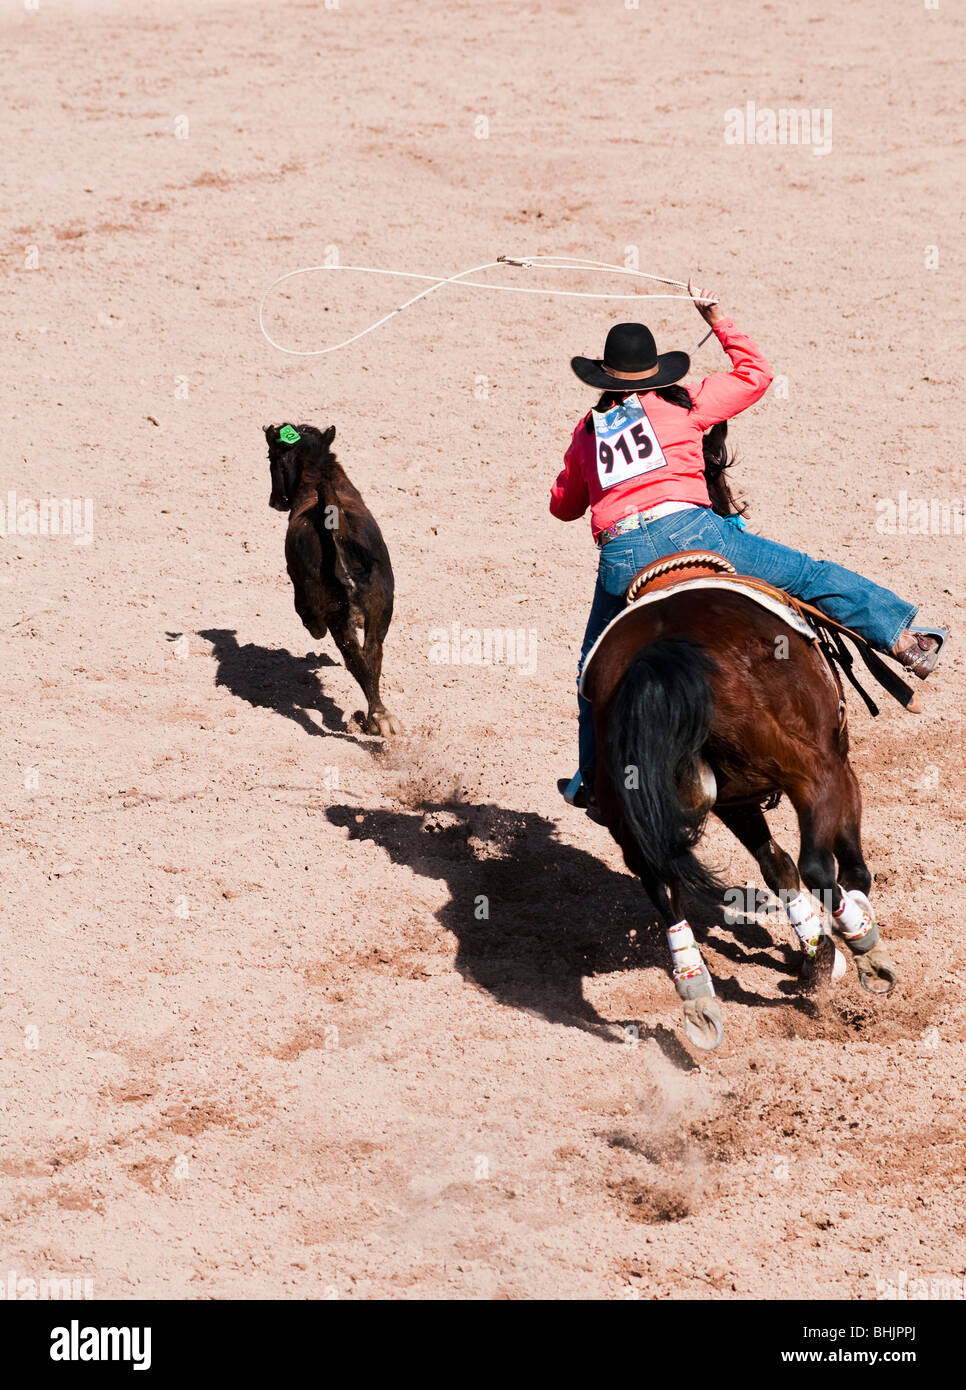 A cowgirl competes in the breakaway roping event during the O'Odham Tash all-indian rodeo - Stock Image